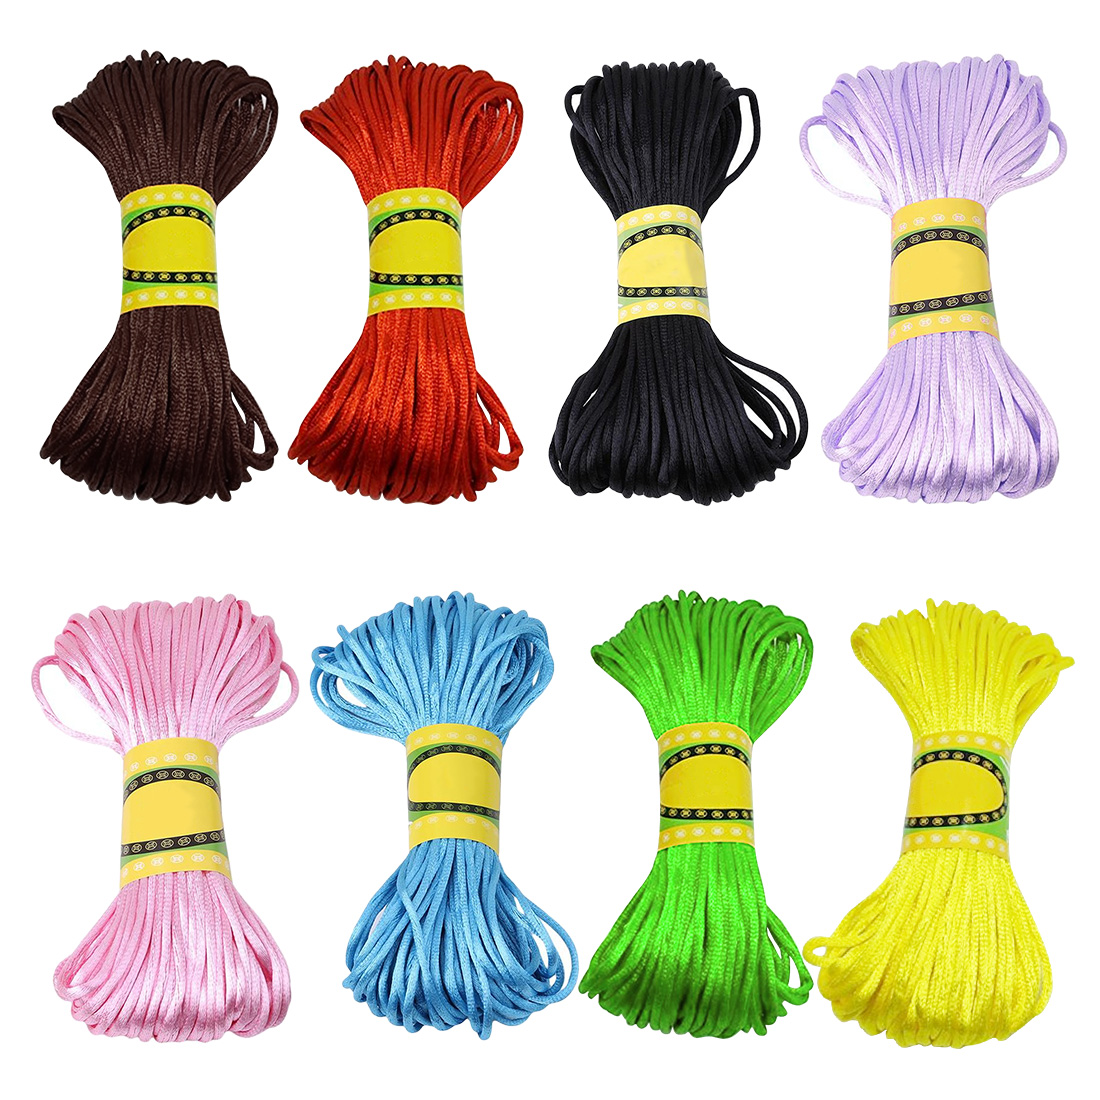 silk braided cord 20M Spool Thin 2MM Mix Color Nylon Black Chinese Knotting Macrame Cord Braided DIY Beading String in Jewelry Findings Components from Jewelry Accessories